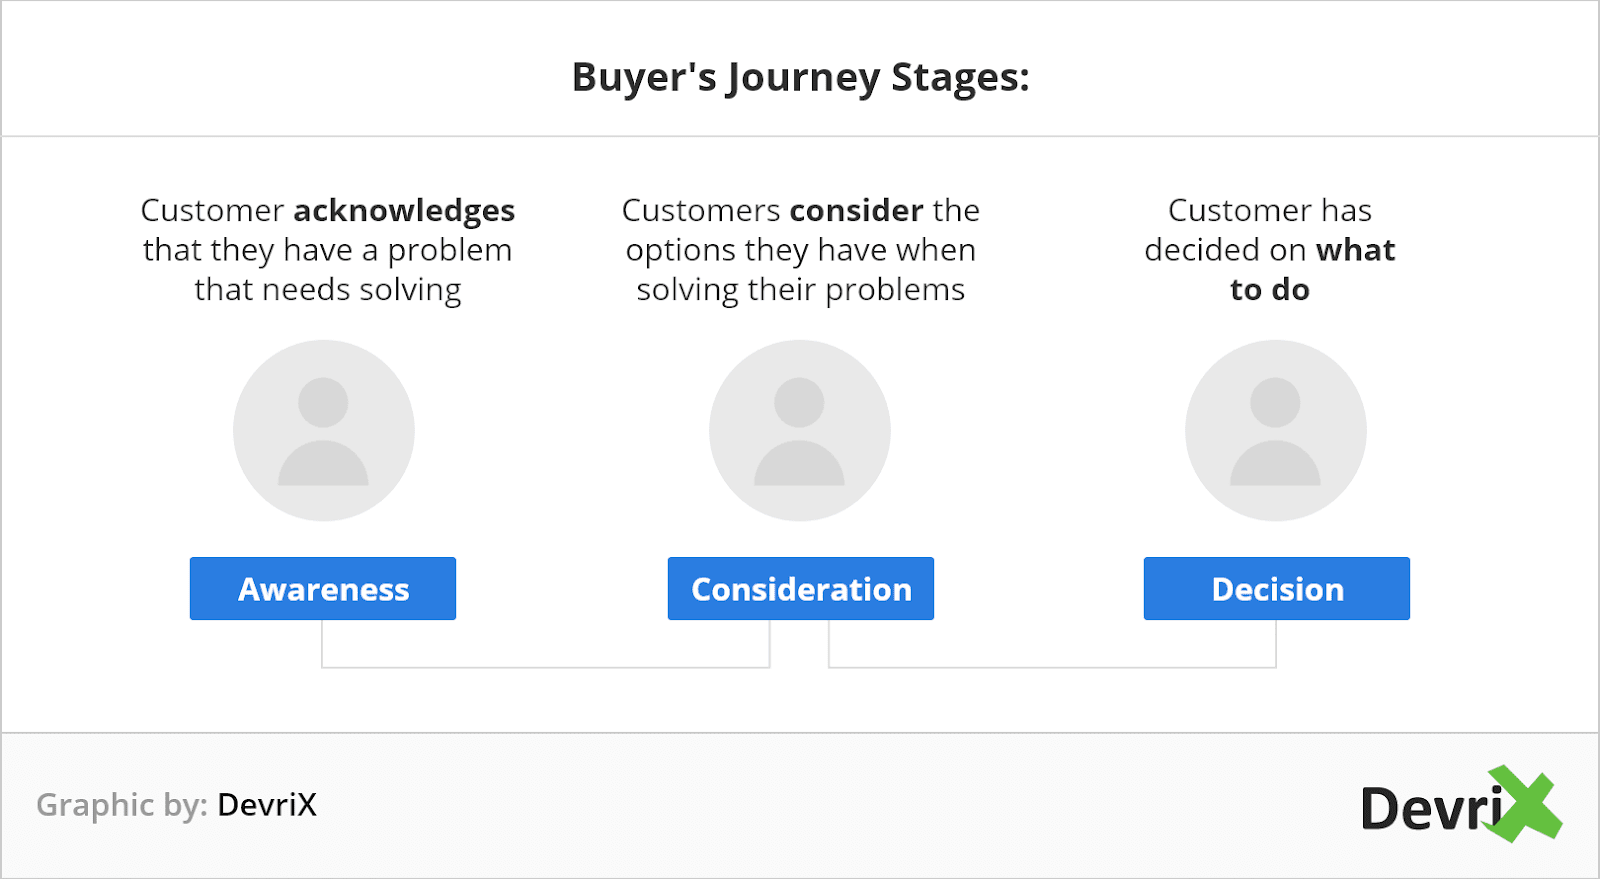 Buyers Journey Stages@2x